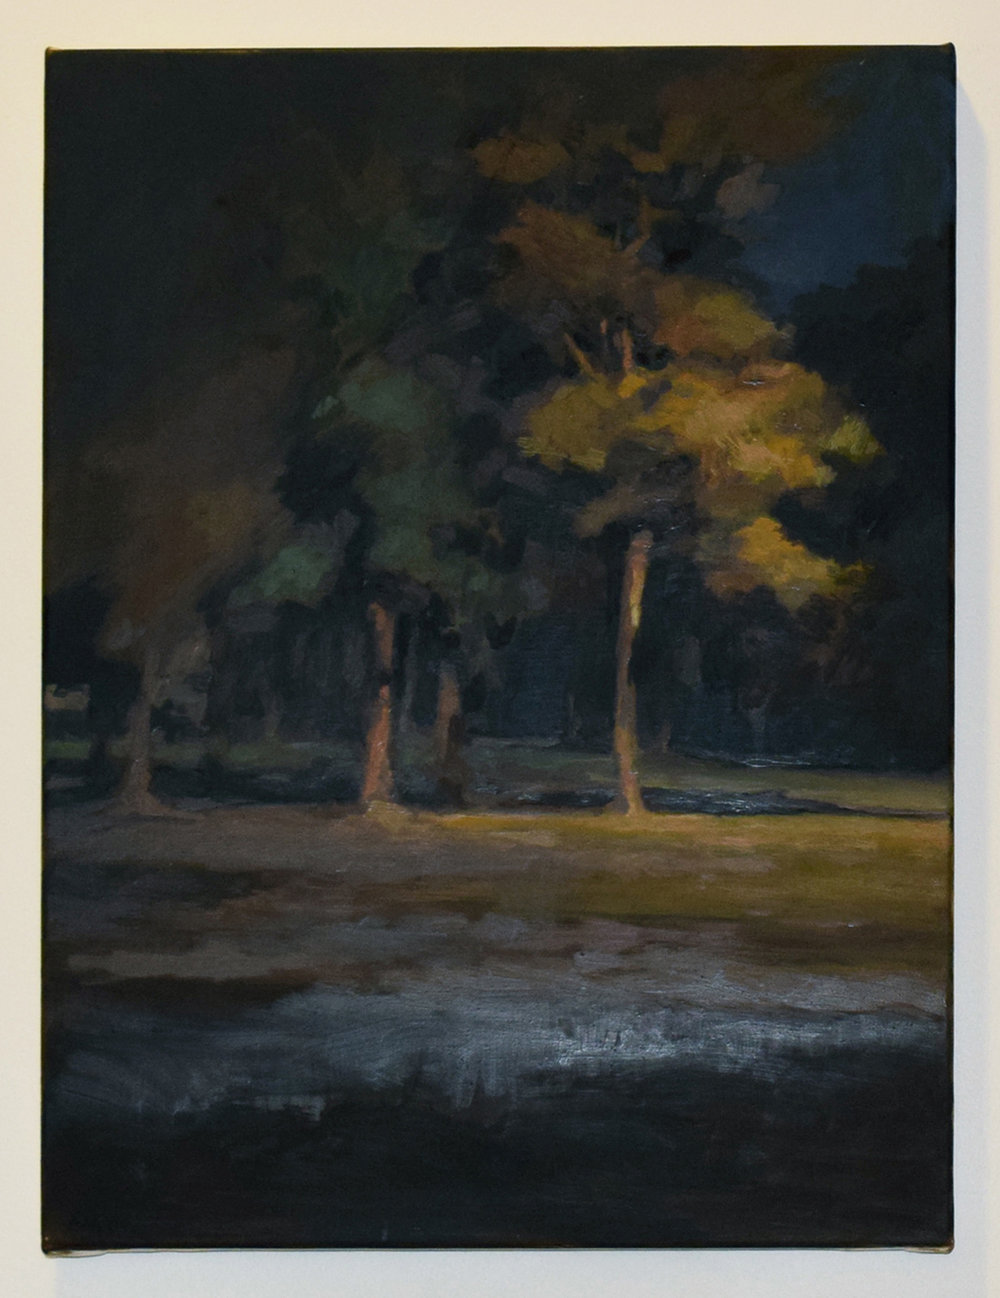 30. Gina Moore, 'Park at Night', 2007, oil on linen, NFS